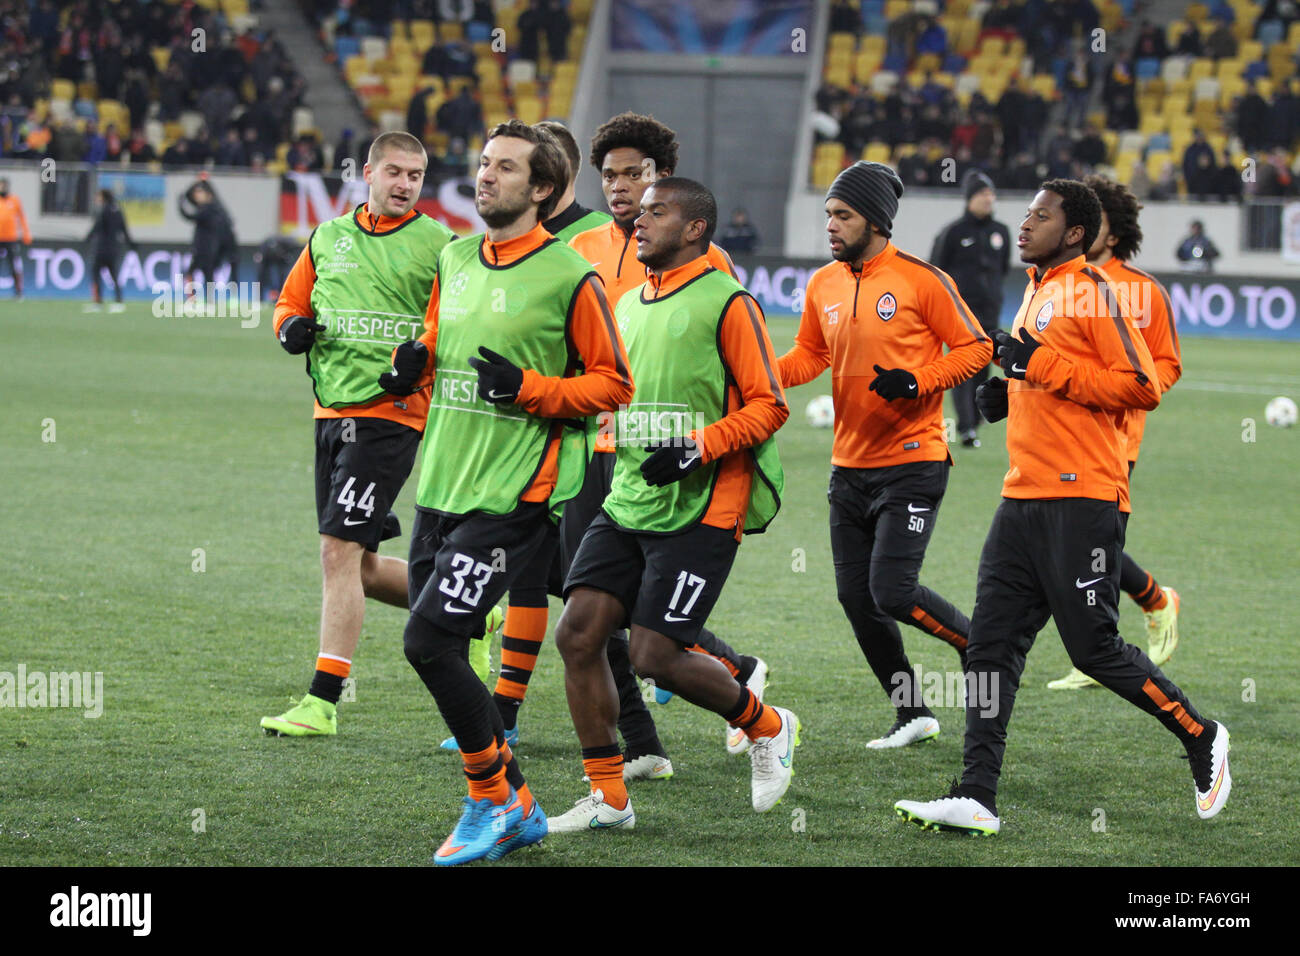 69c864a082 Of Fc Shakhtar Donetsk Stock Photos   Of Fc Shakhtar Donetsk Stock ...